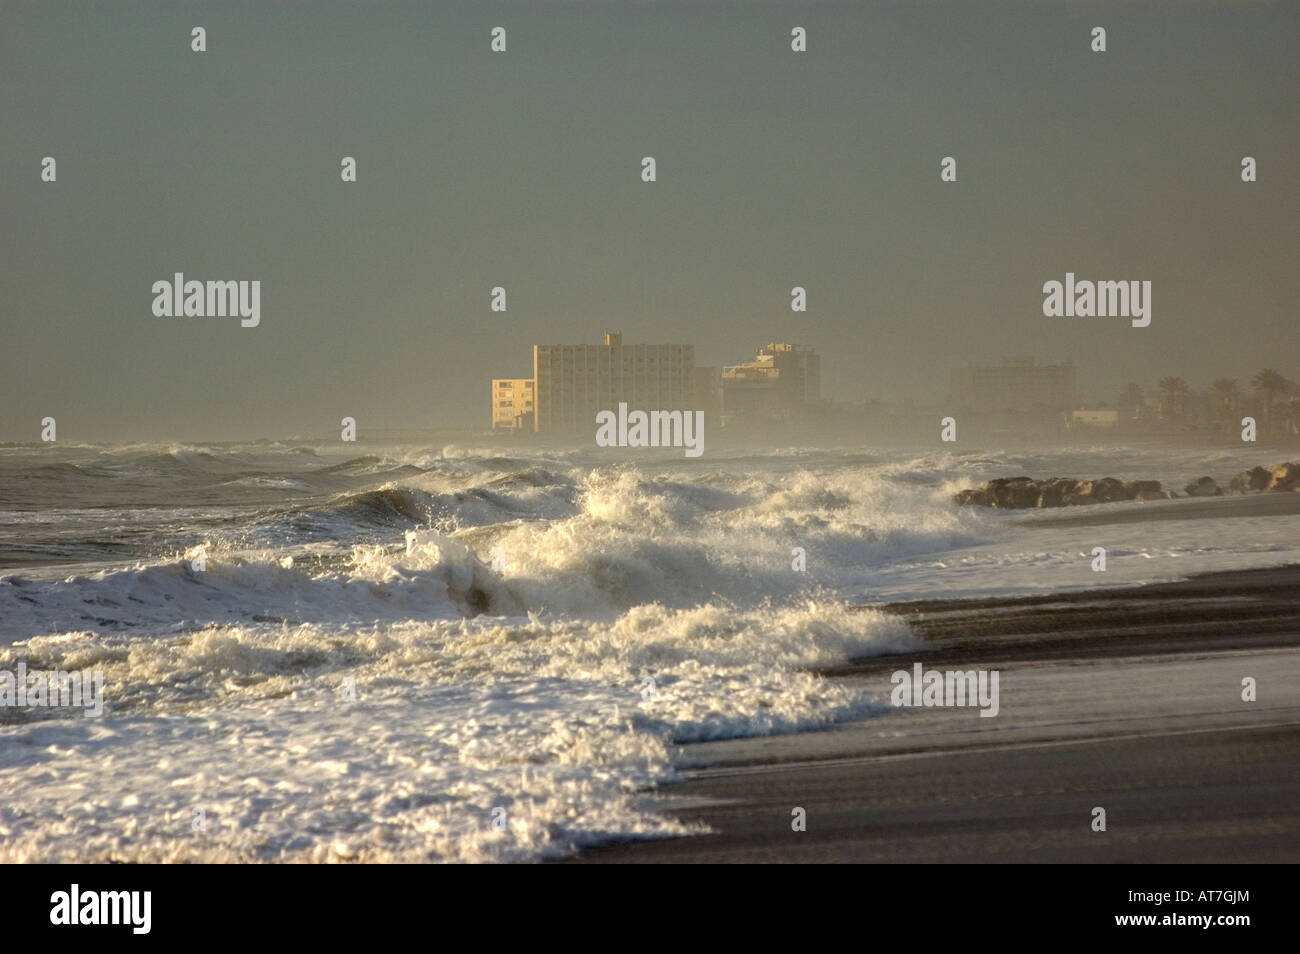 Beach Hotel Obscured By Spray From Rough Sea Malaga Spain Stock